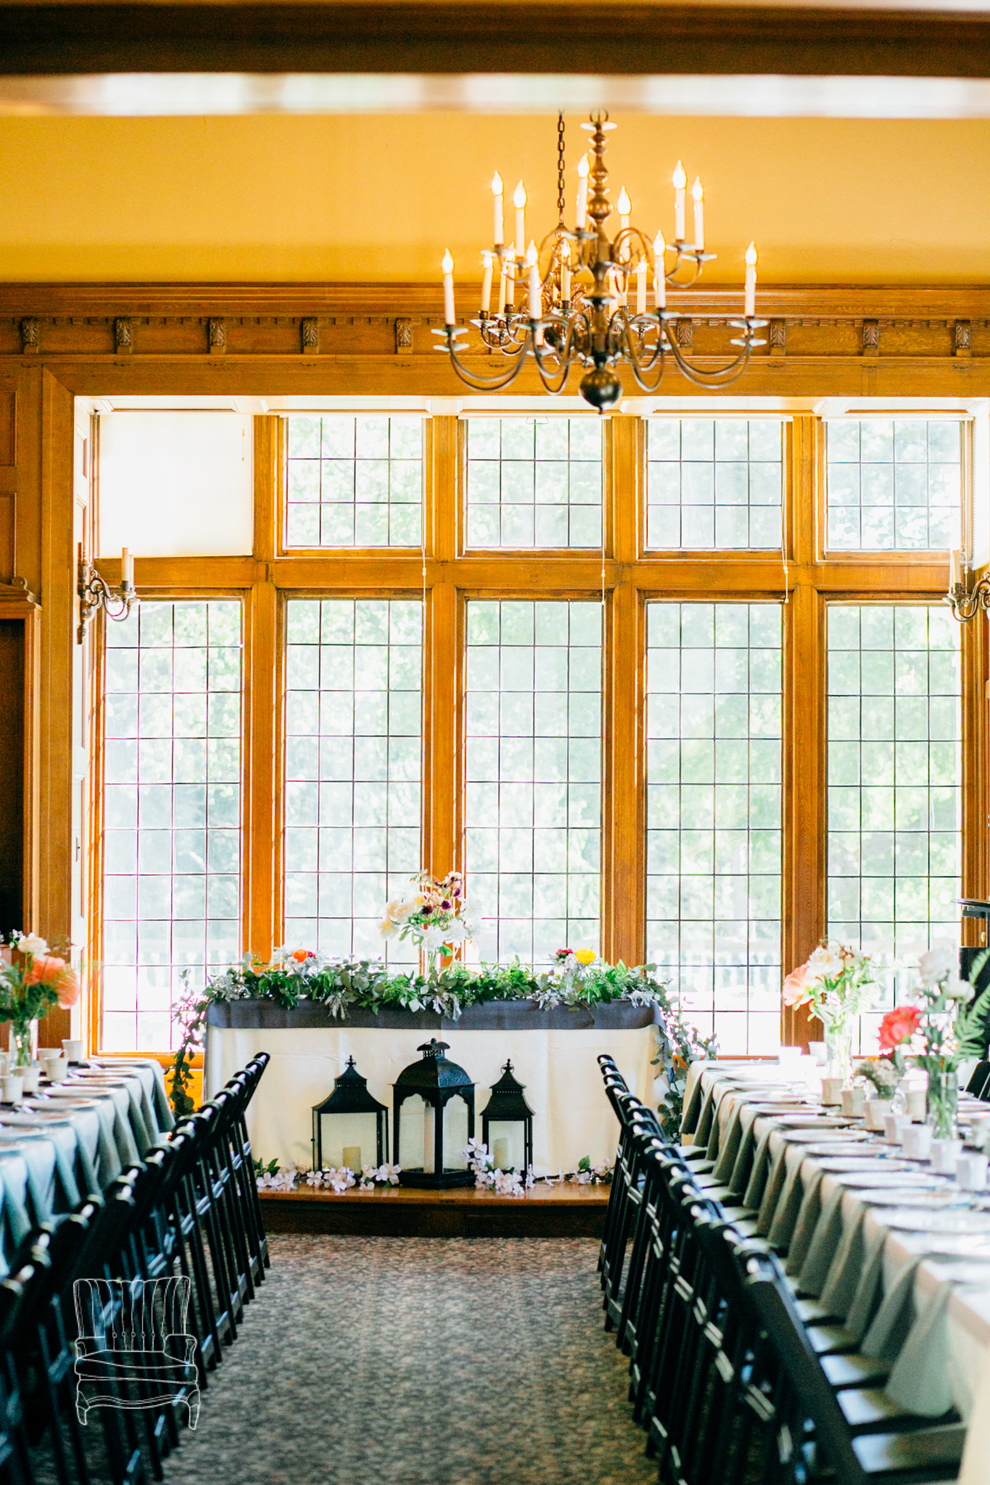 013-lairmont-manor-bellingham-washington-wedding-venue-katheryn-moran-photography-marketing.jpg